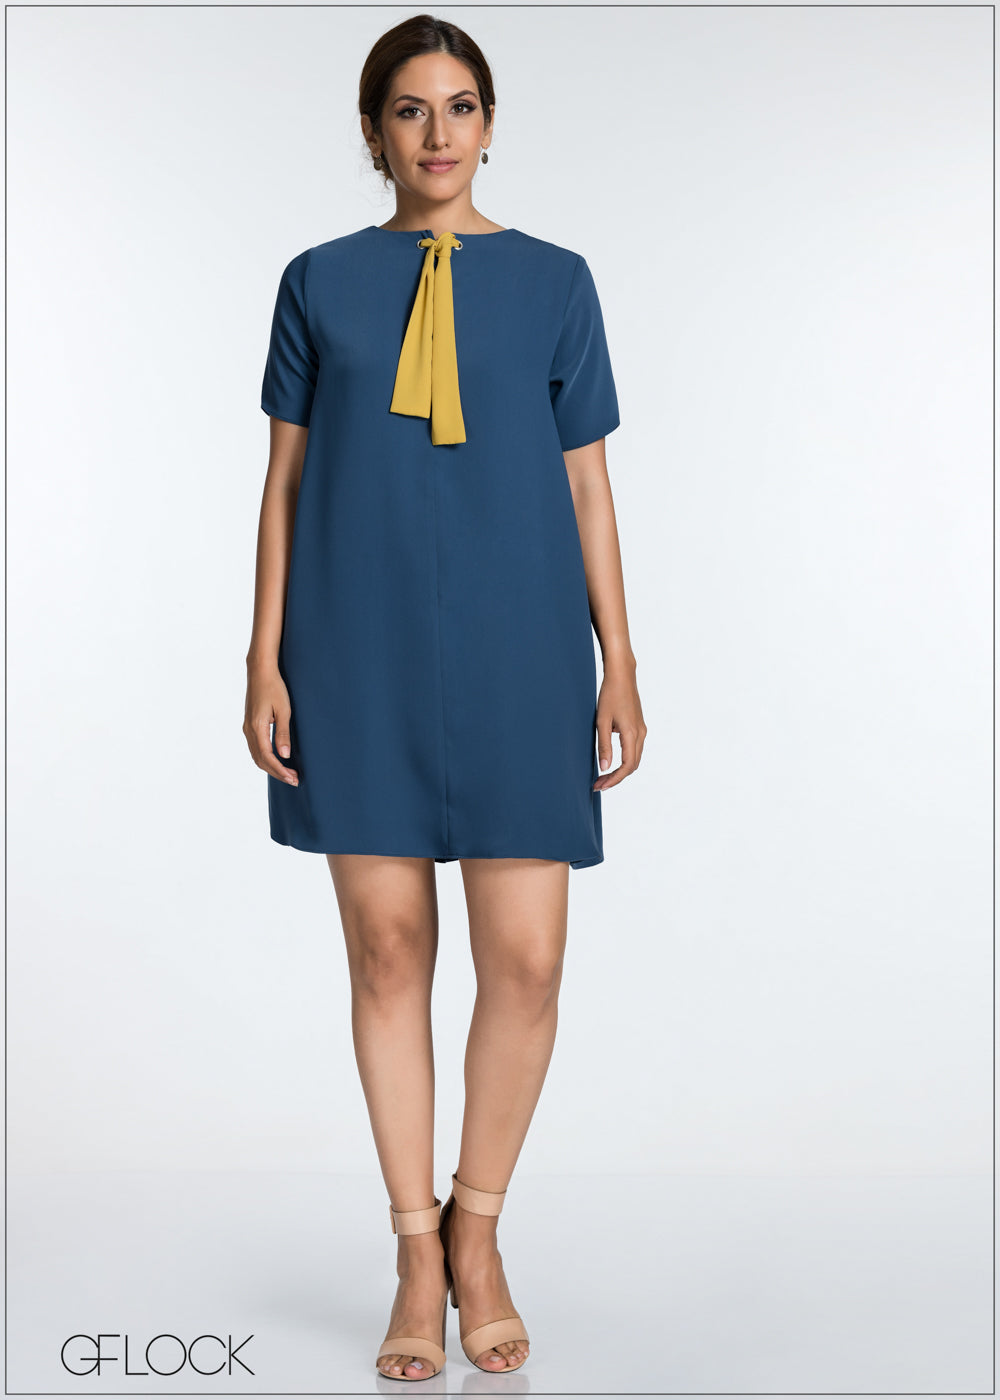 Two Way Dress With Front Tie - GFLOCK.LK